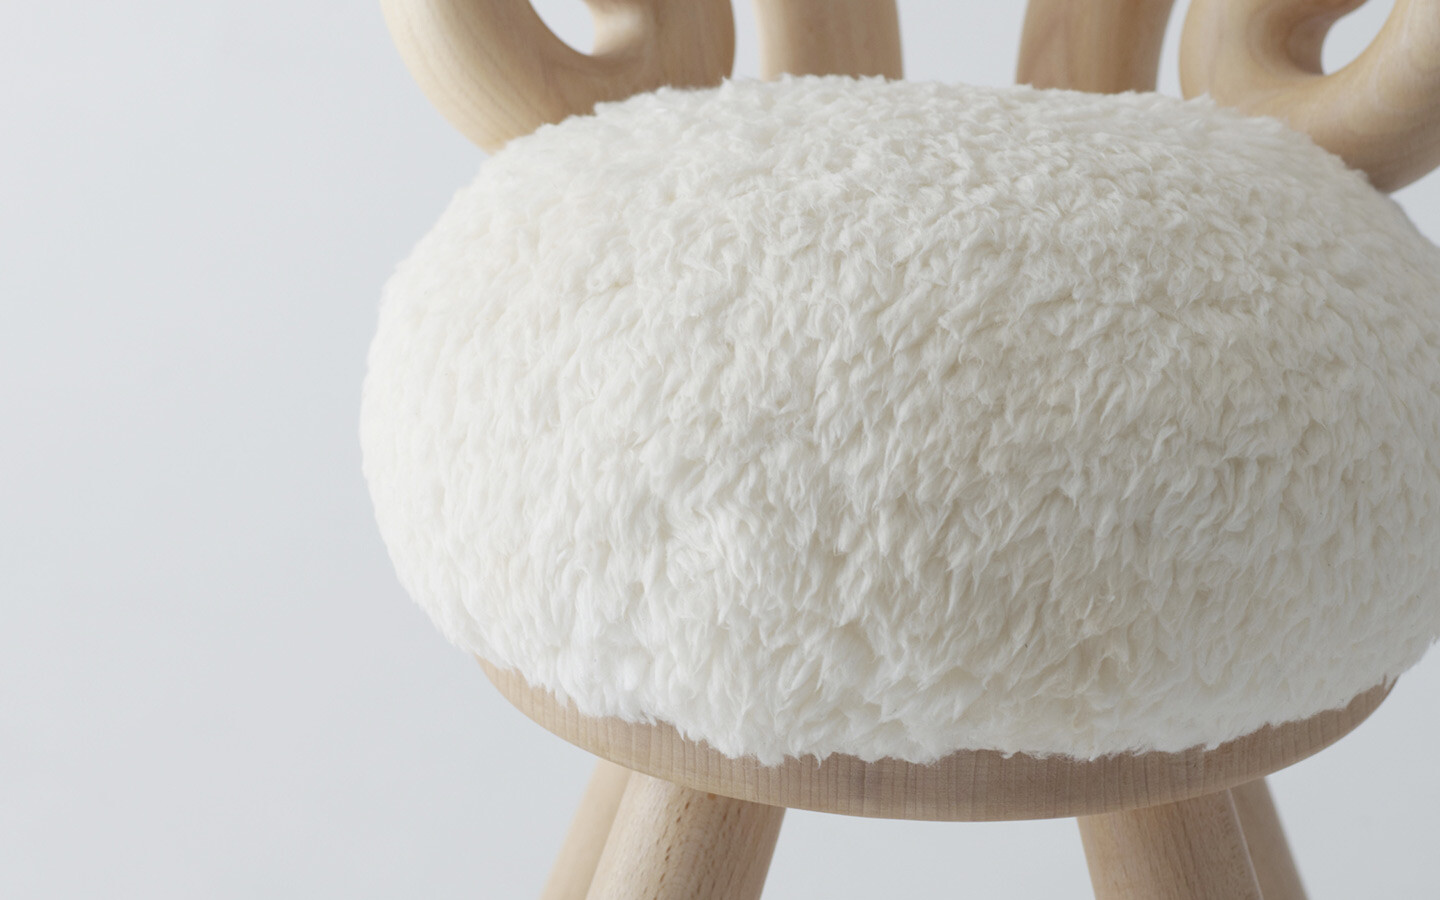 Collection Of Chairs Takeshi Sawada Bring Joy To Children   HomeWorldDesign  (6)